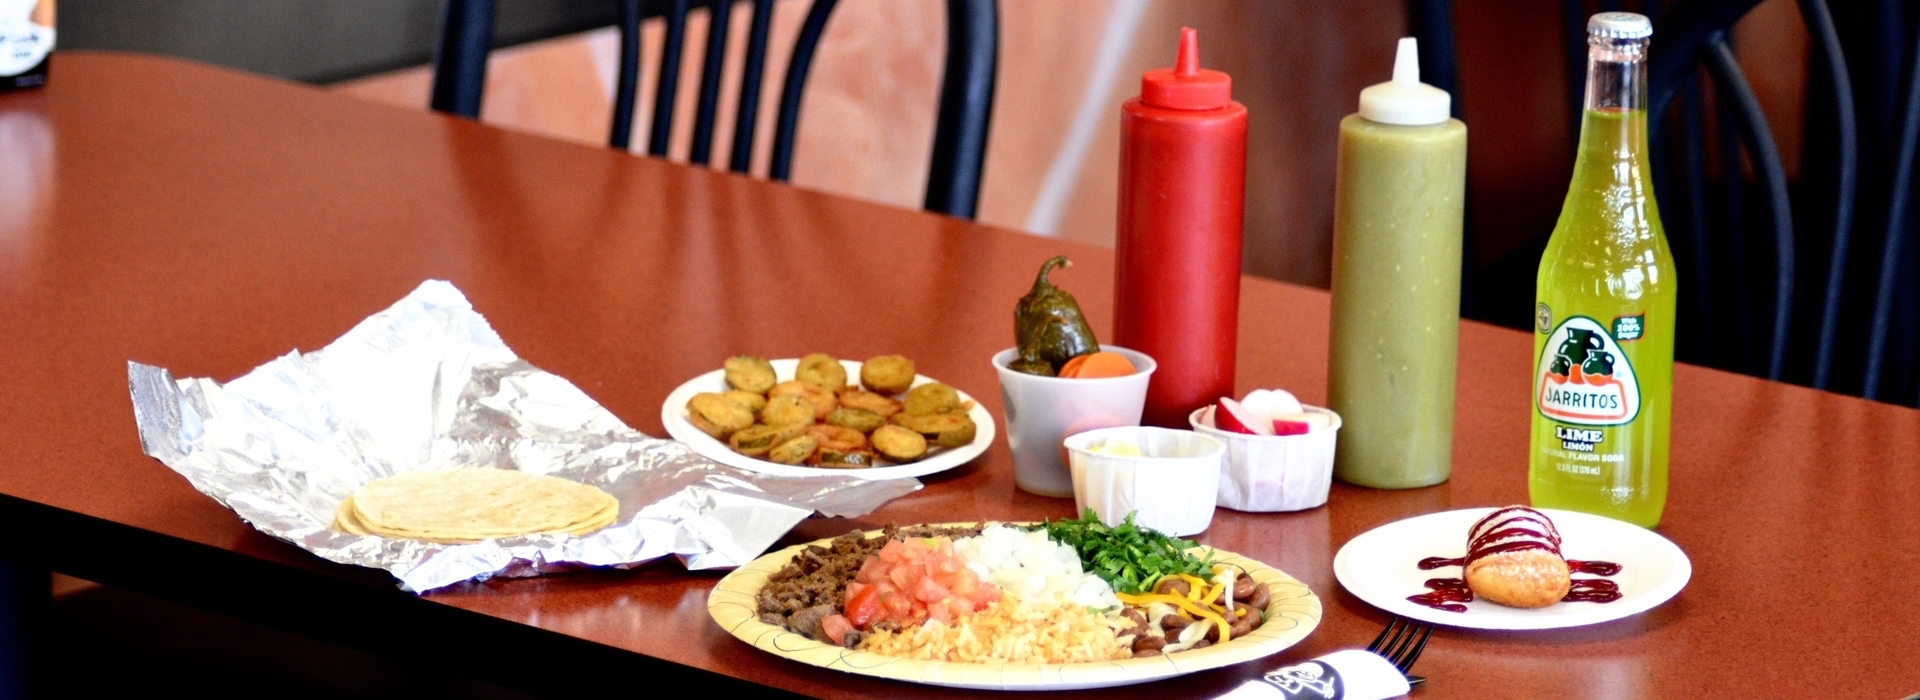 burrito-amigos-mexican-restaurant-eugene-meat-plate-full